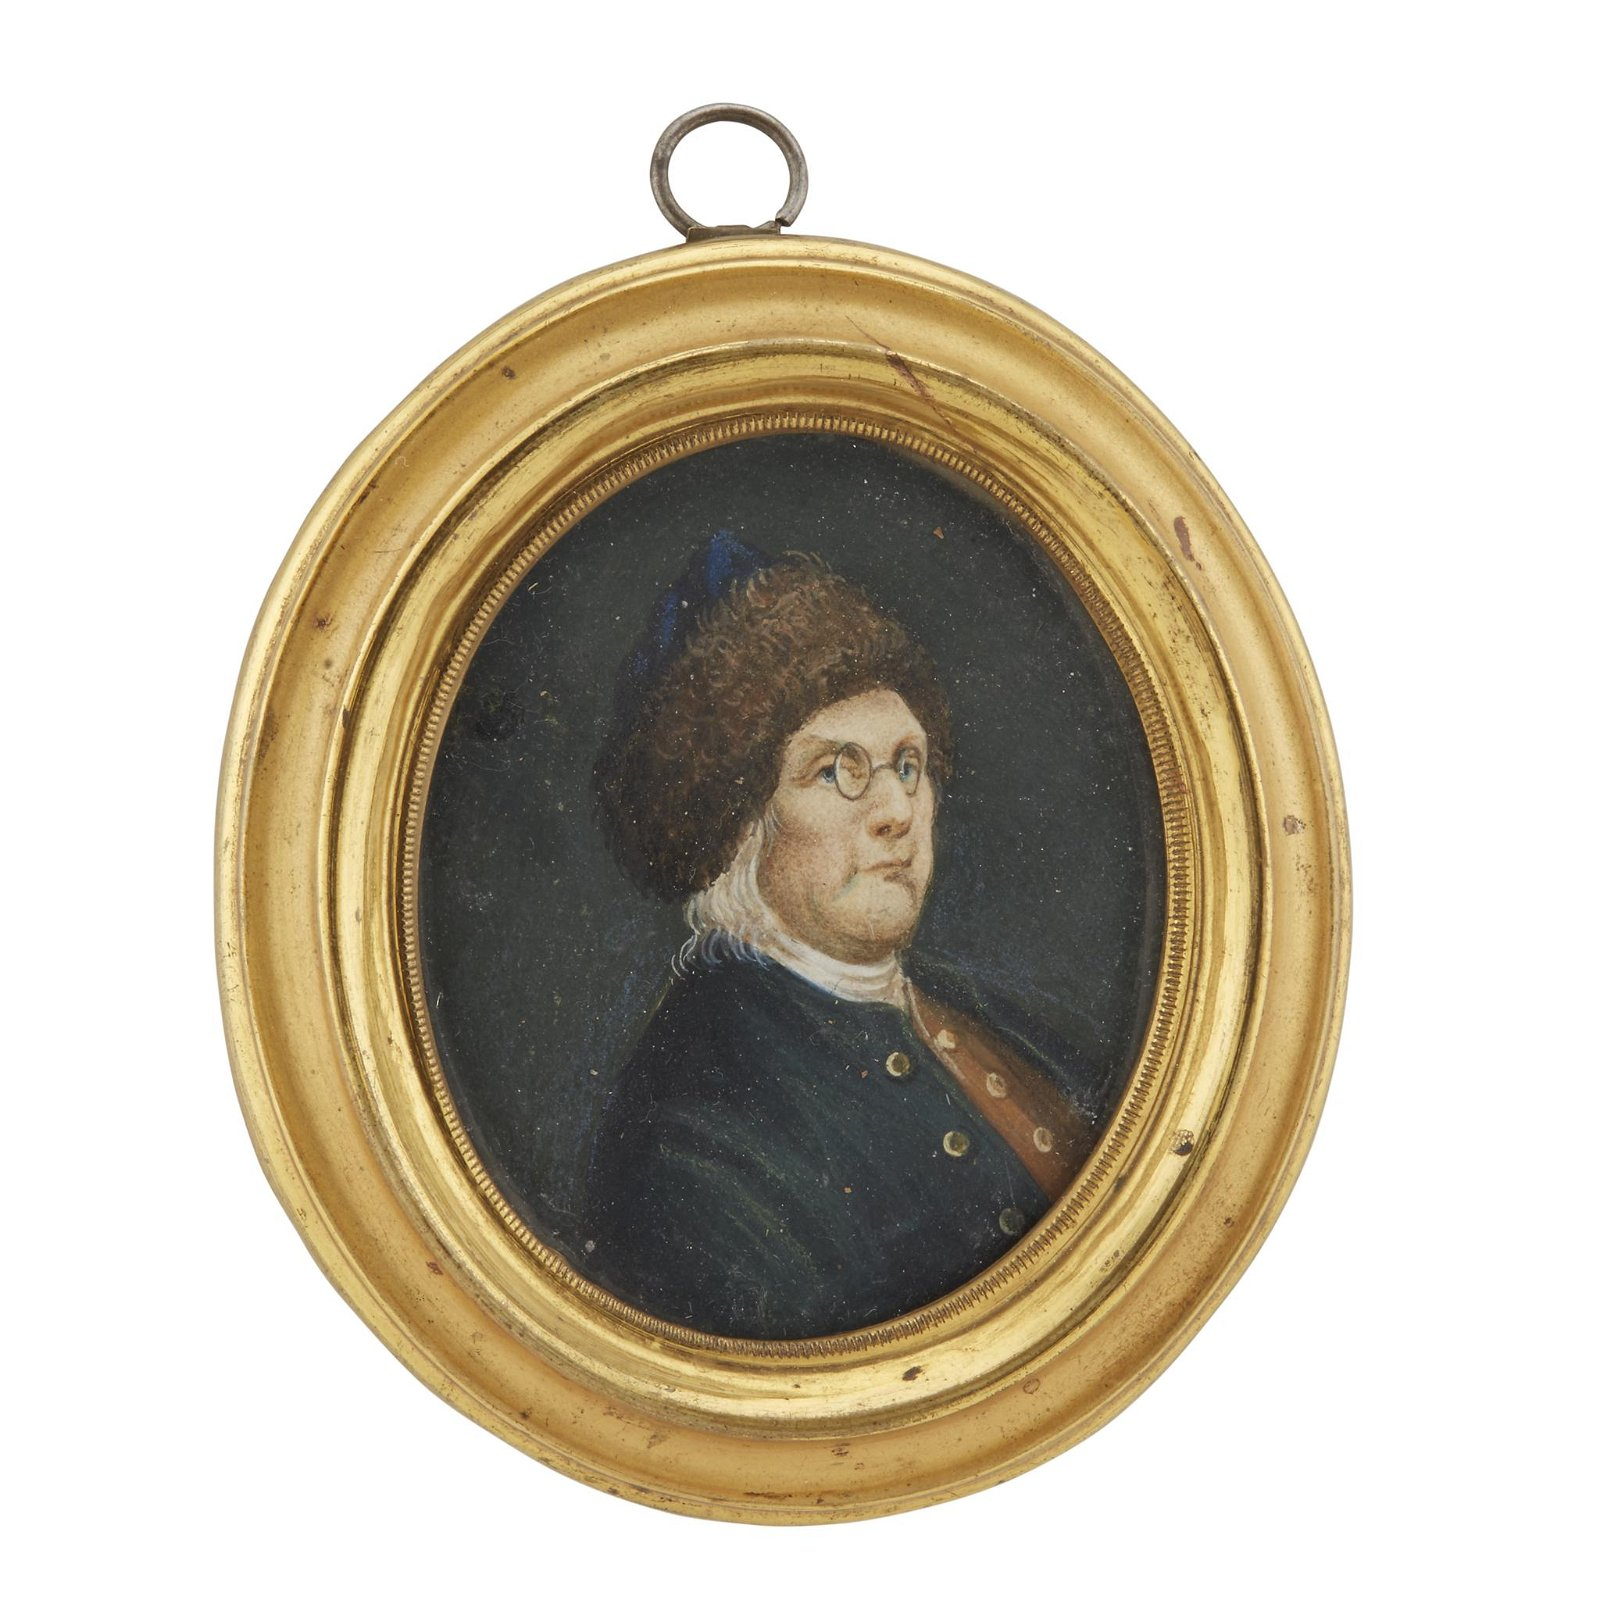 Anglo-Continental School 18th/19th century, Portrait